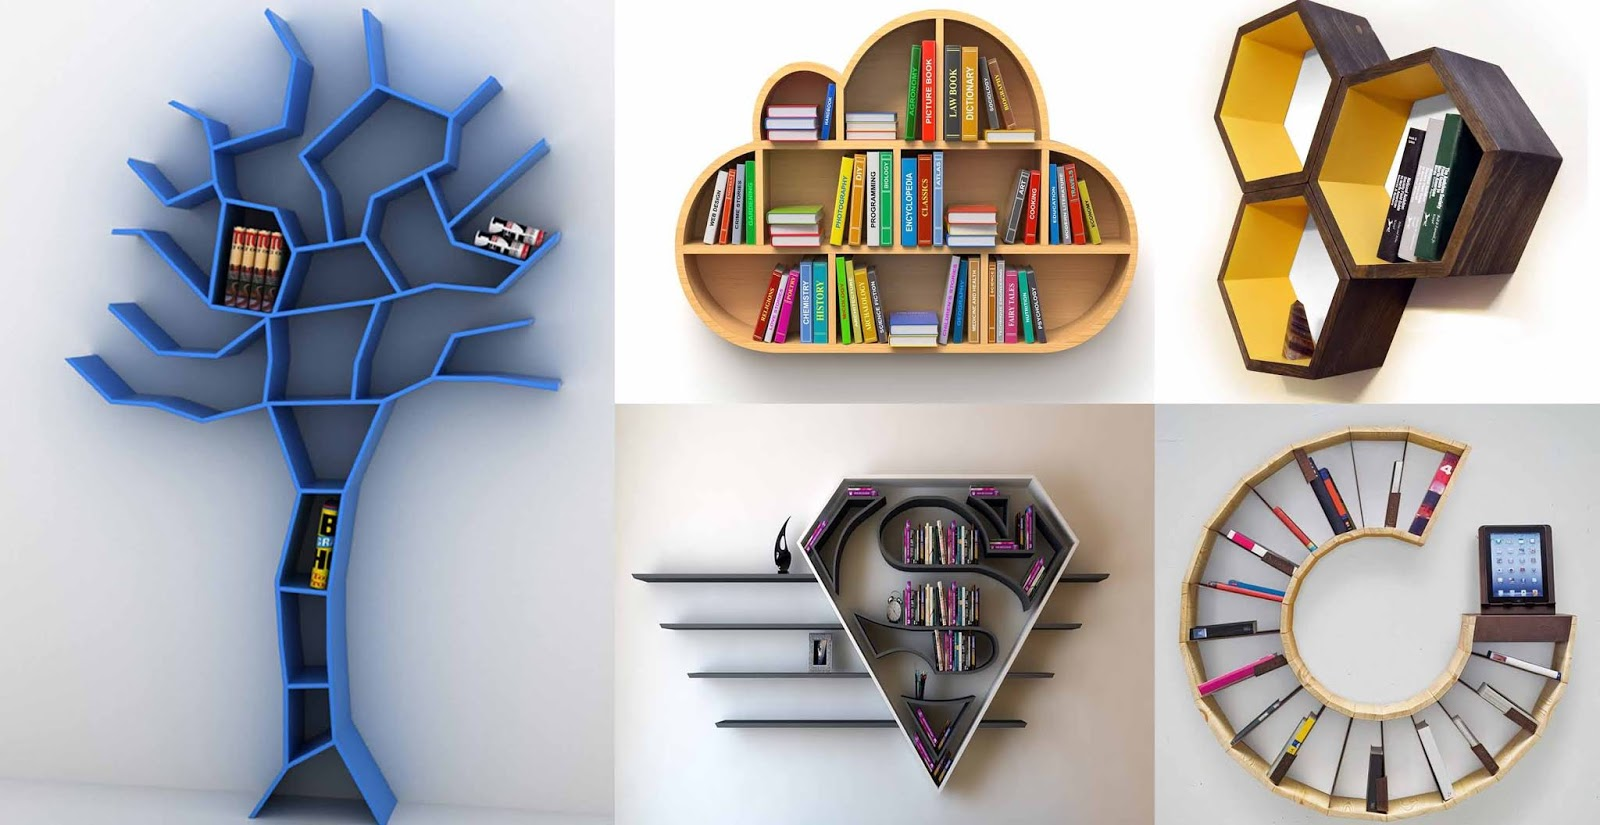 Top 25 Awesome Wall Shelves Design Ideas | Engineering ...